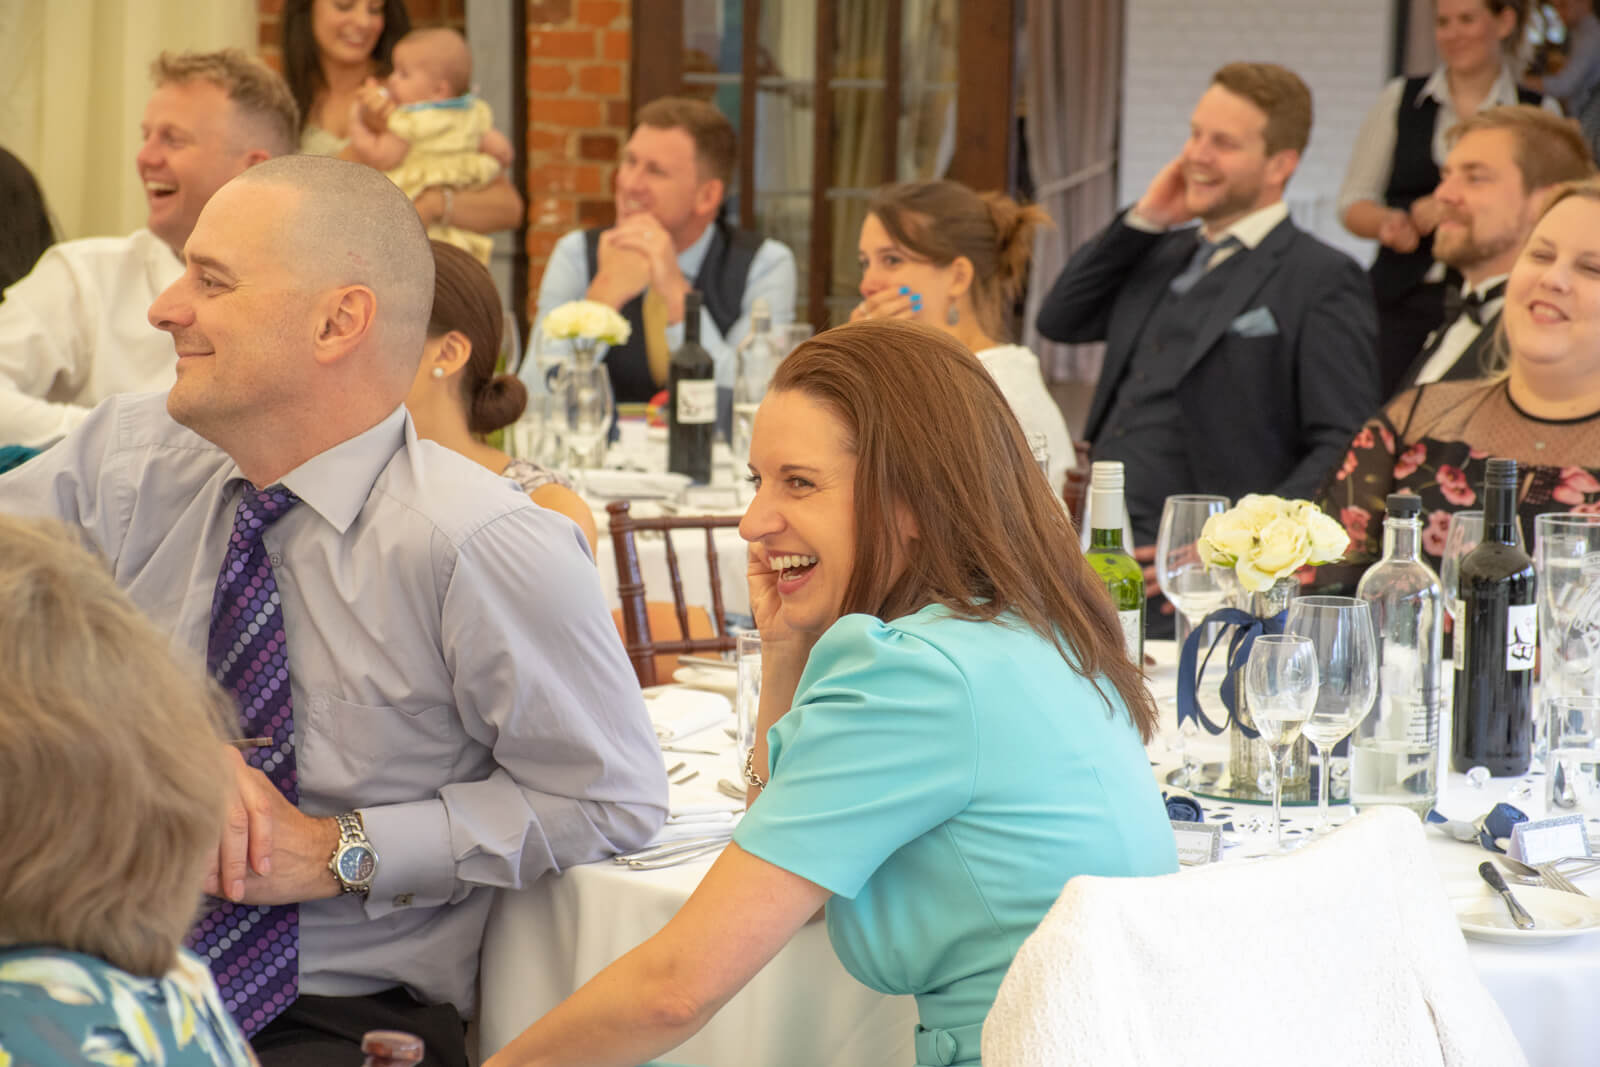 Wedding guests laughing during the speeeches at a wedding breakfast in a marquee